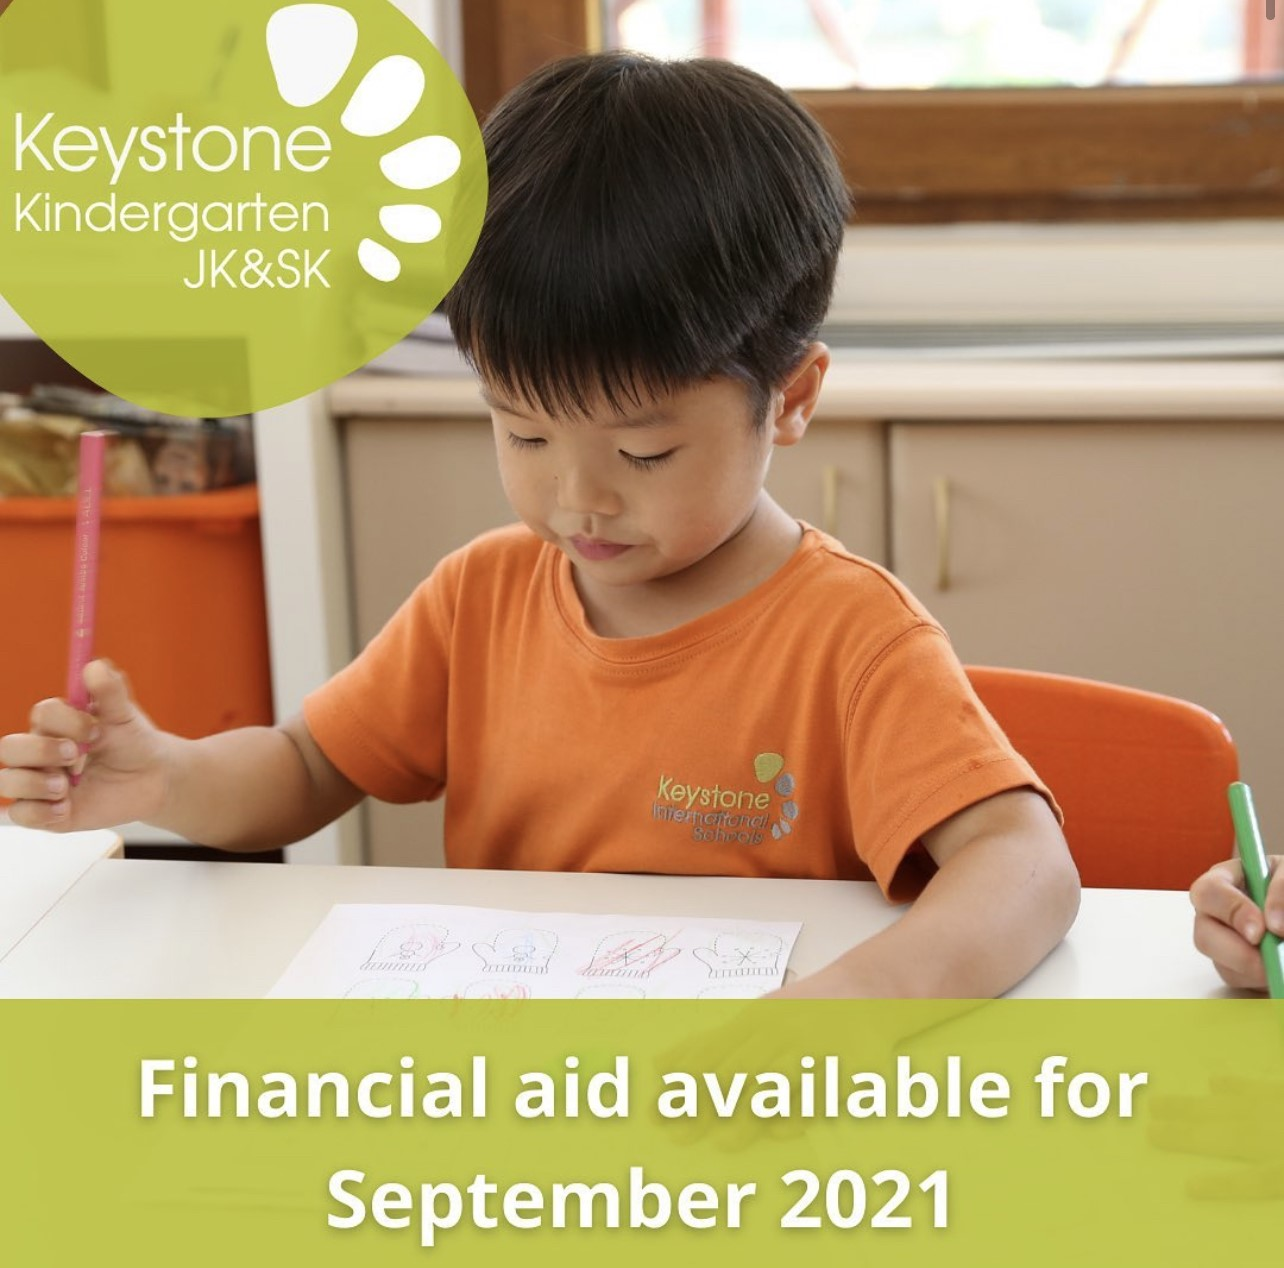 Financial aid available for September 2021